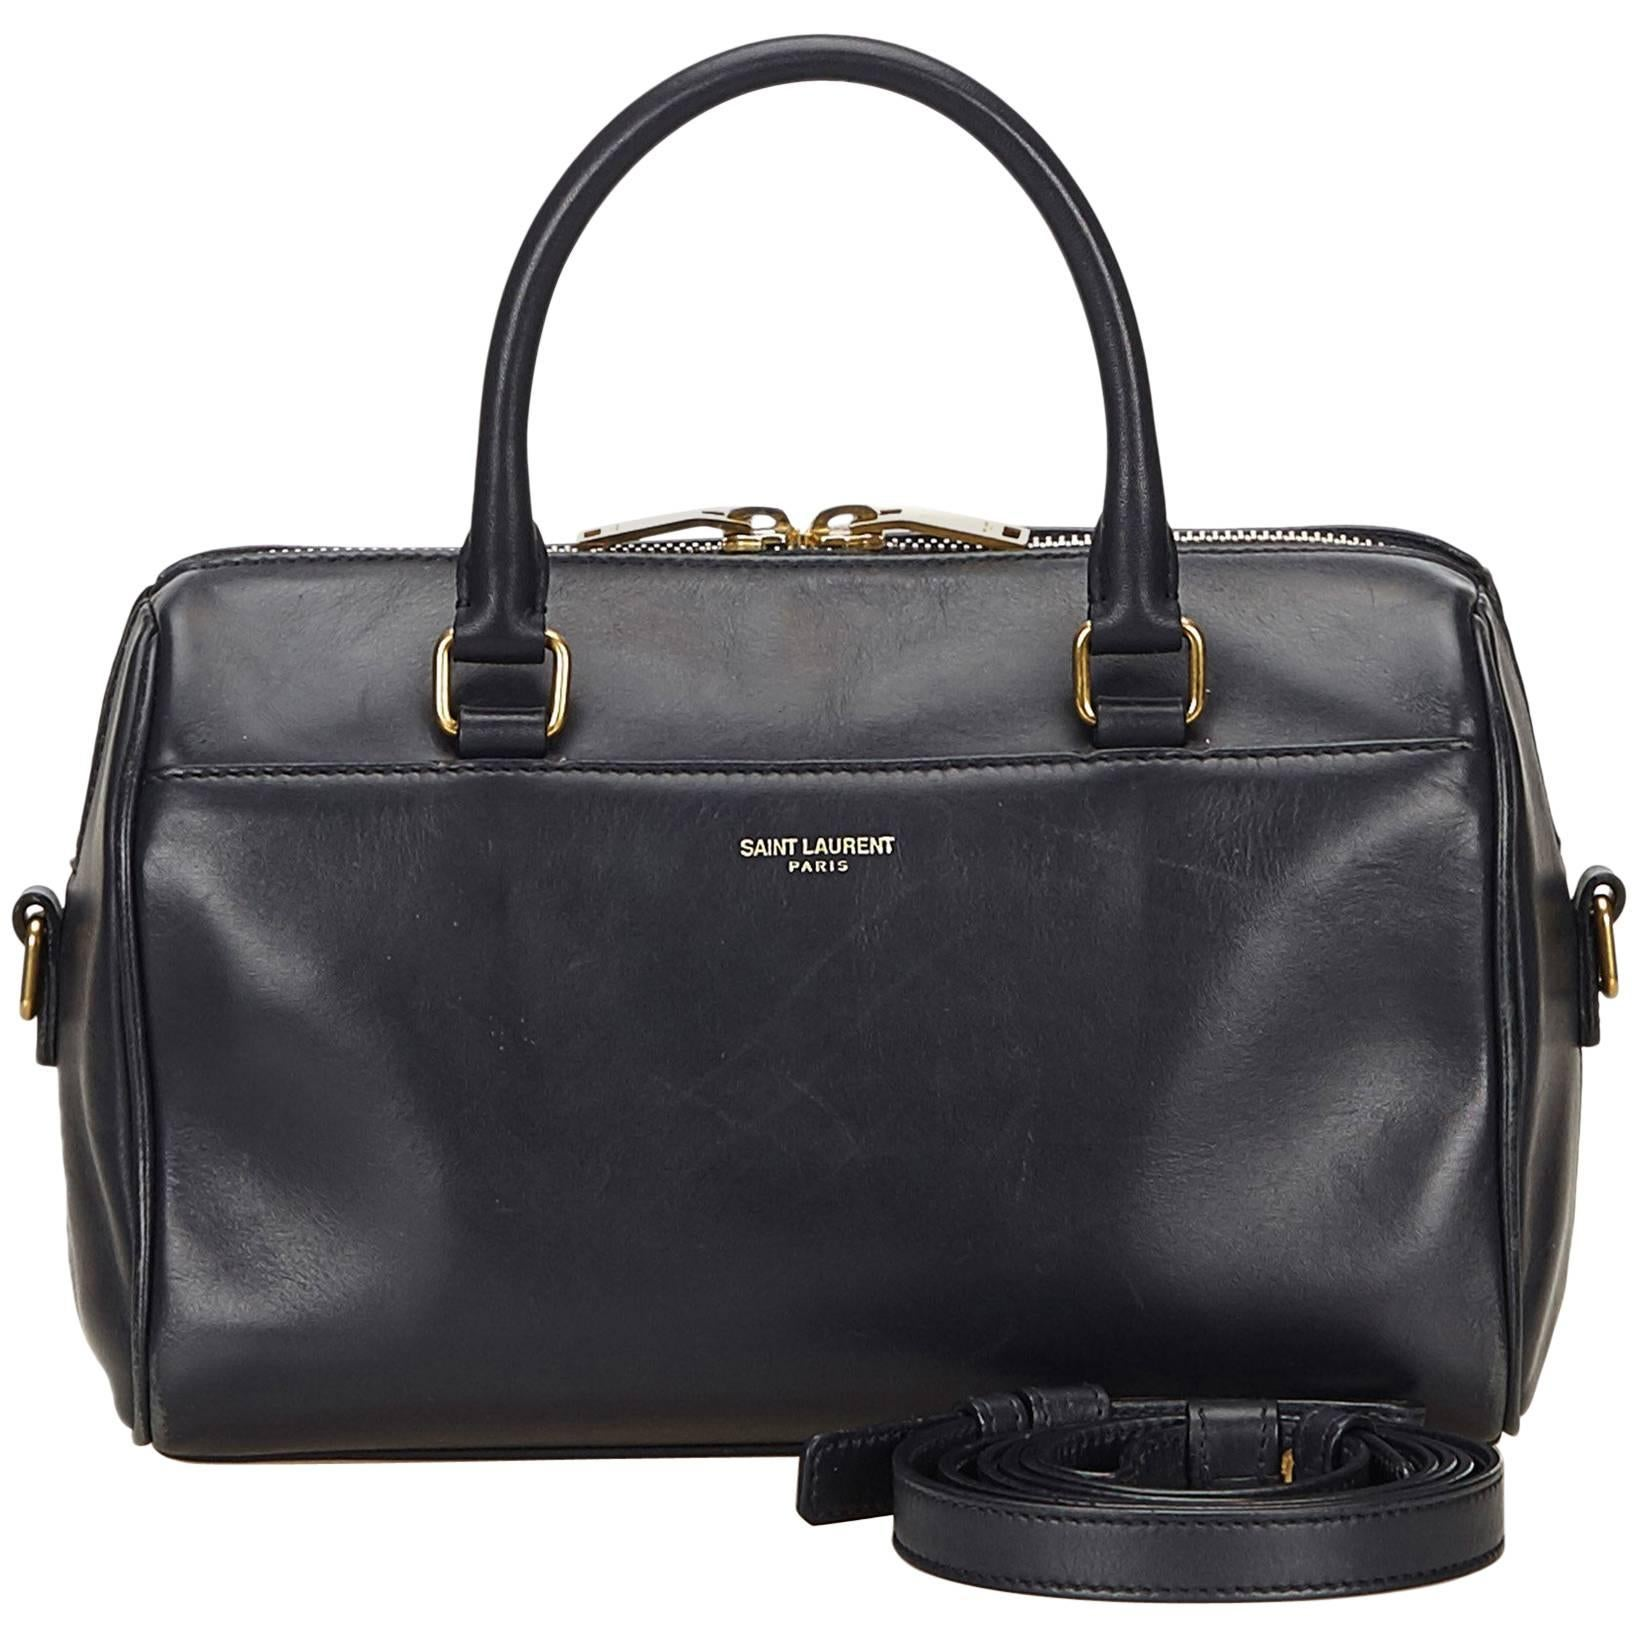 1stdibs Saint Laurent Classic Baby Duffle Bag Leather kMktqfhJn8